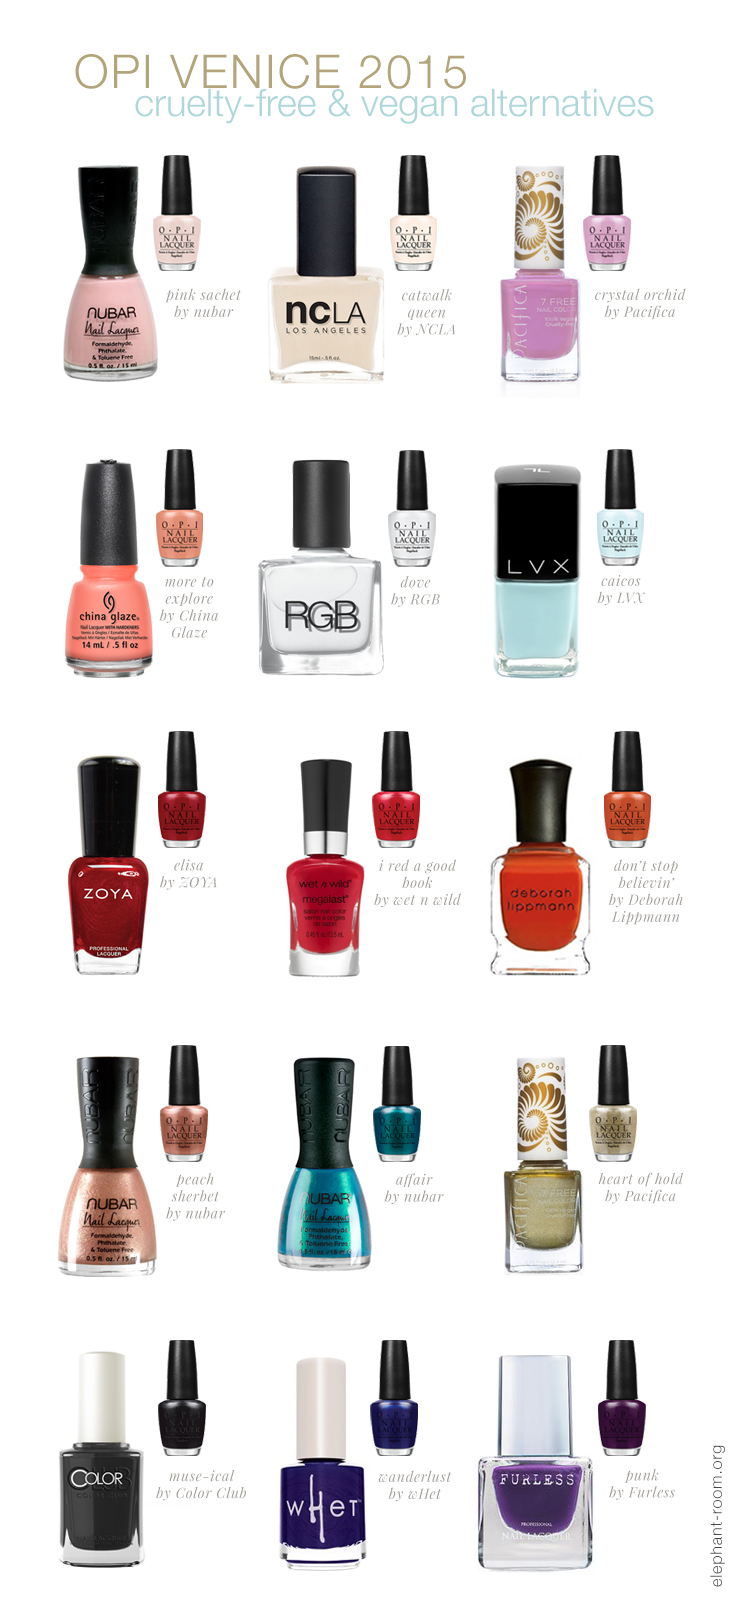 Inspired by OPI's 2015 Venice Collection, here are cruelty-free and vegan dupes!